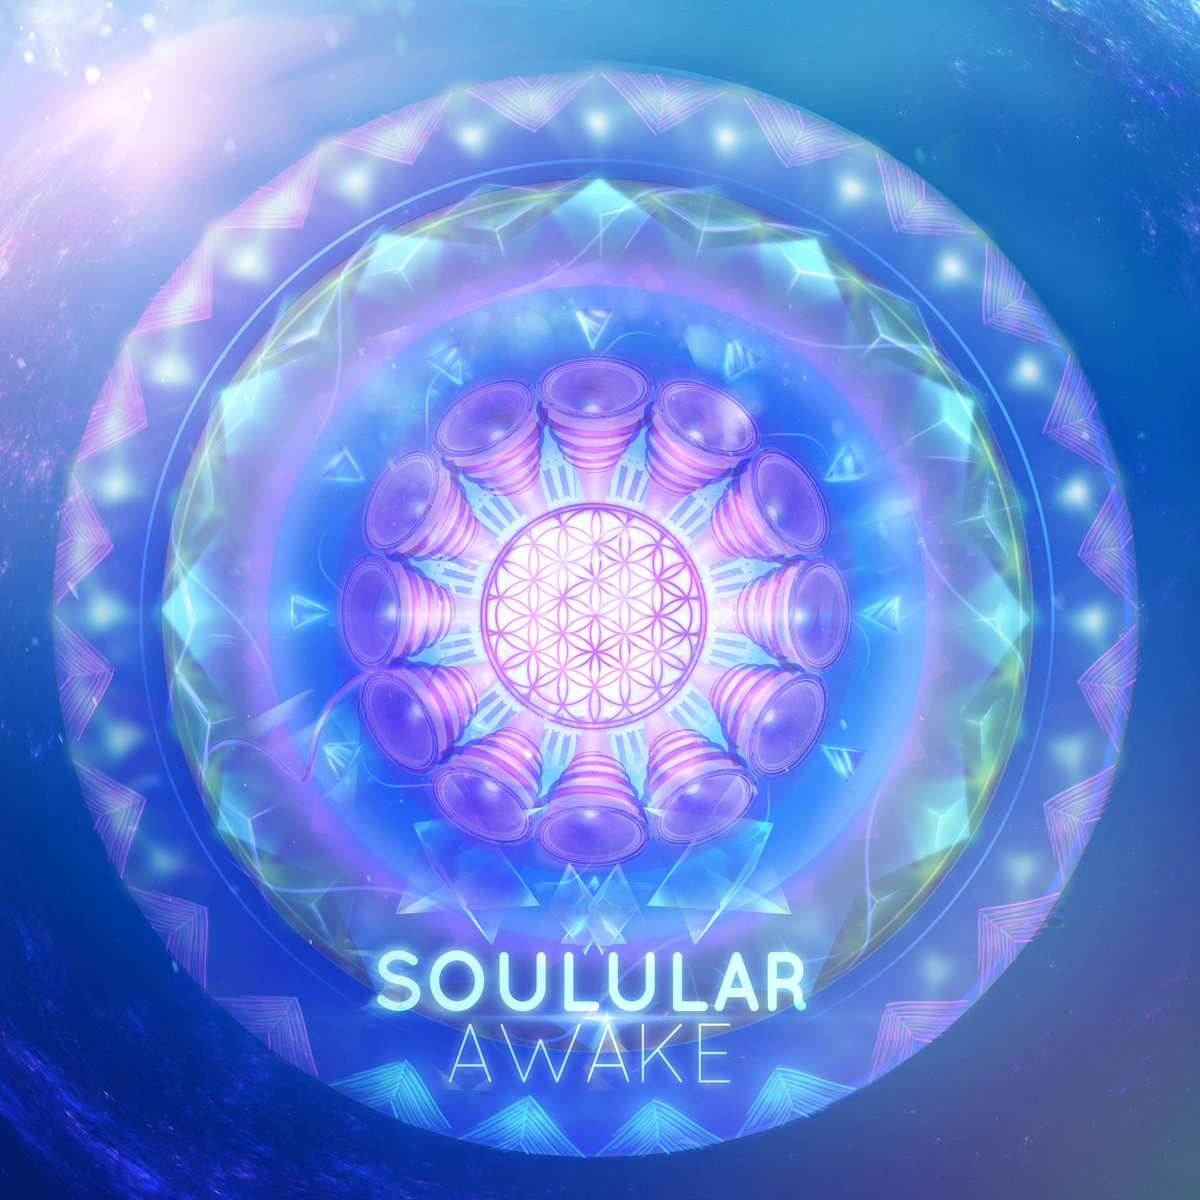 Soulular - Time @ 'AWAKE' album (los angeles, chill)